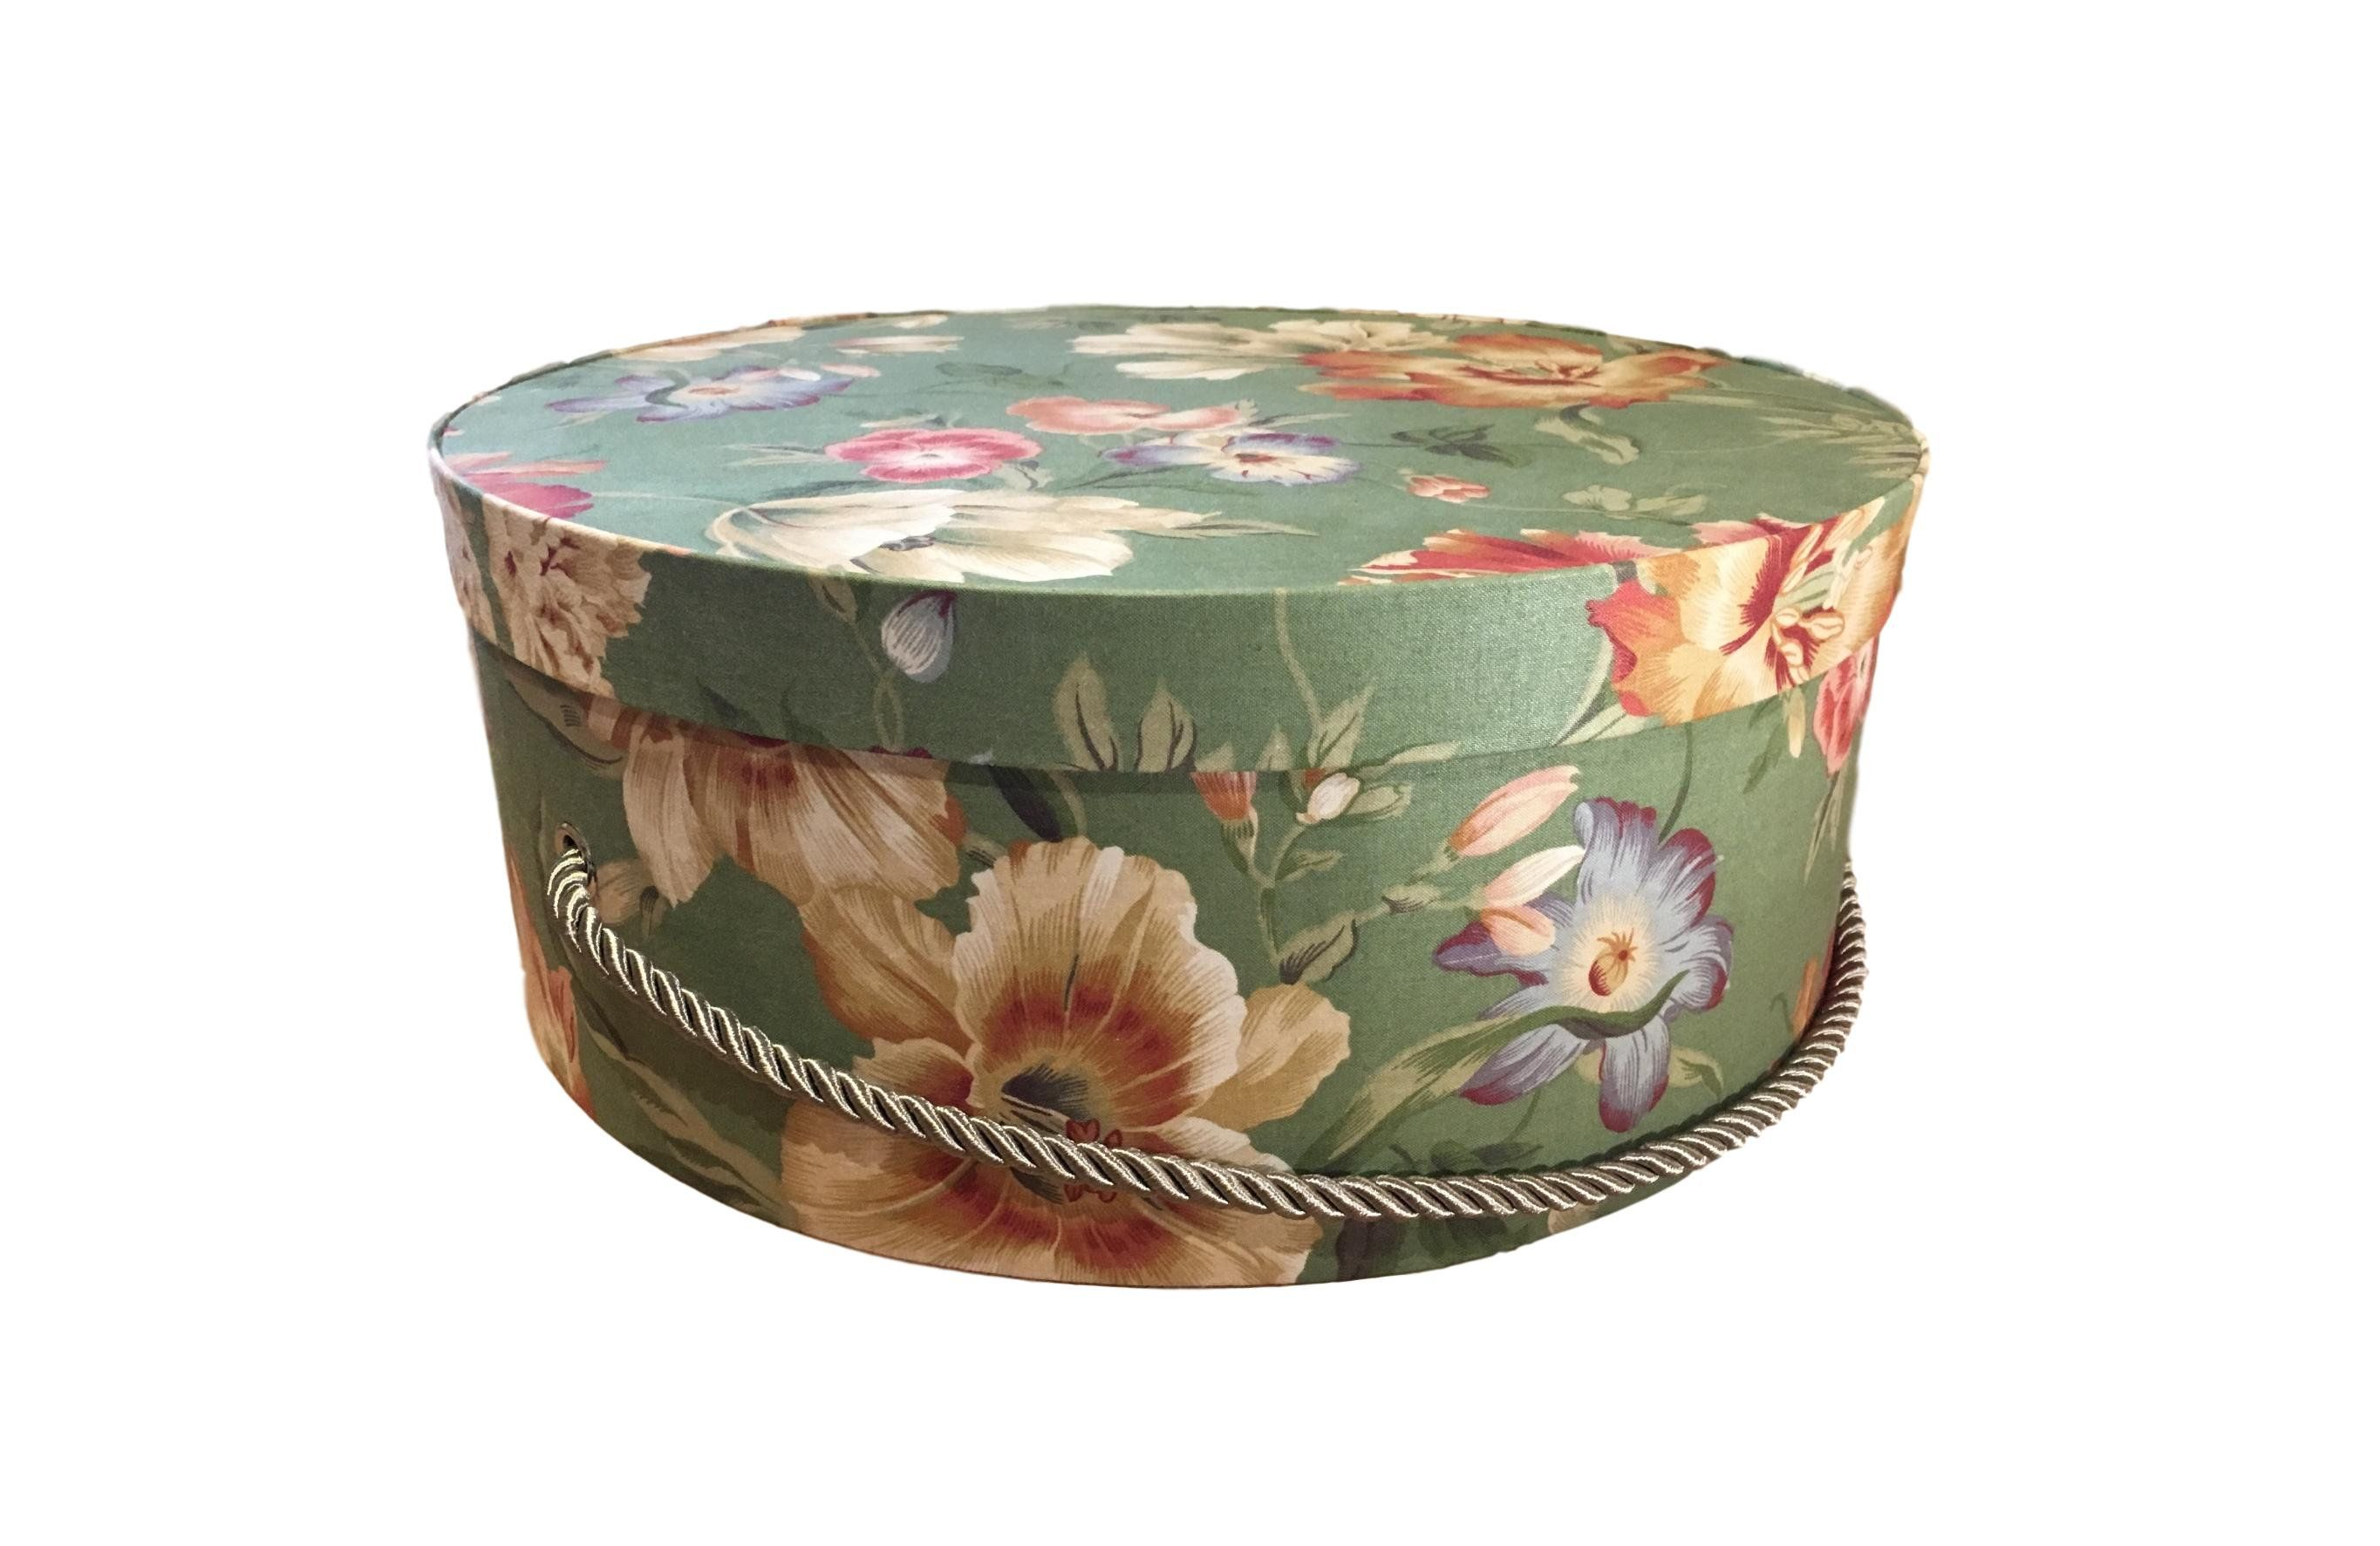 Large Hat Box In Green Floral Large Decorative Fabric Covered Hat Boxes Round Storage Box Keepsake Boxes With Lid Vintage Hat Boxes Fabric Decor Large Hats